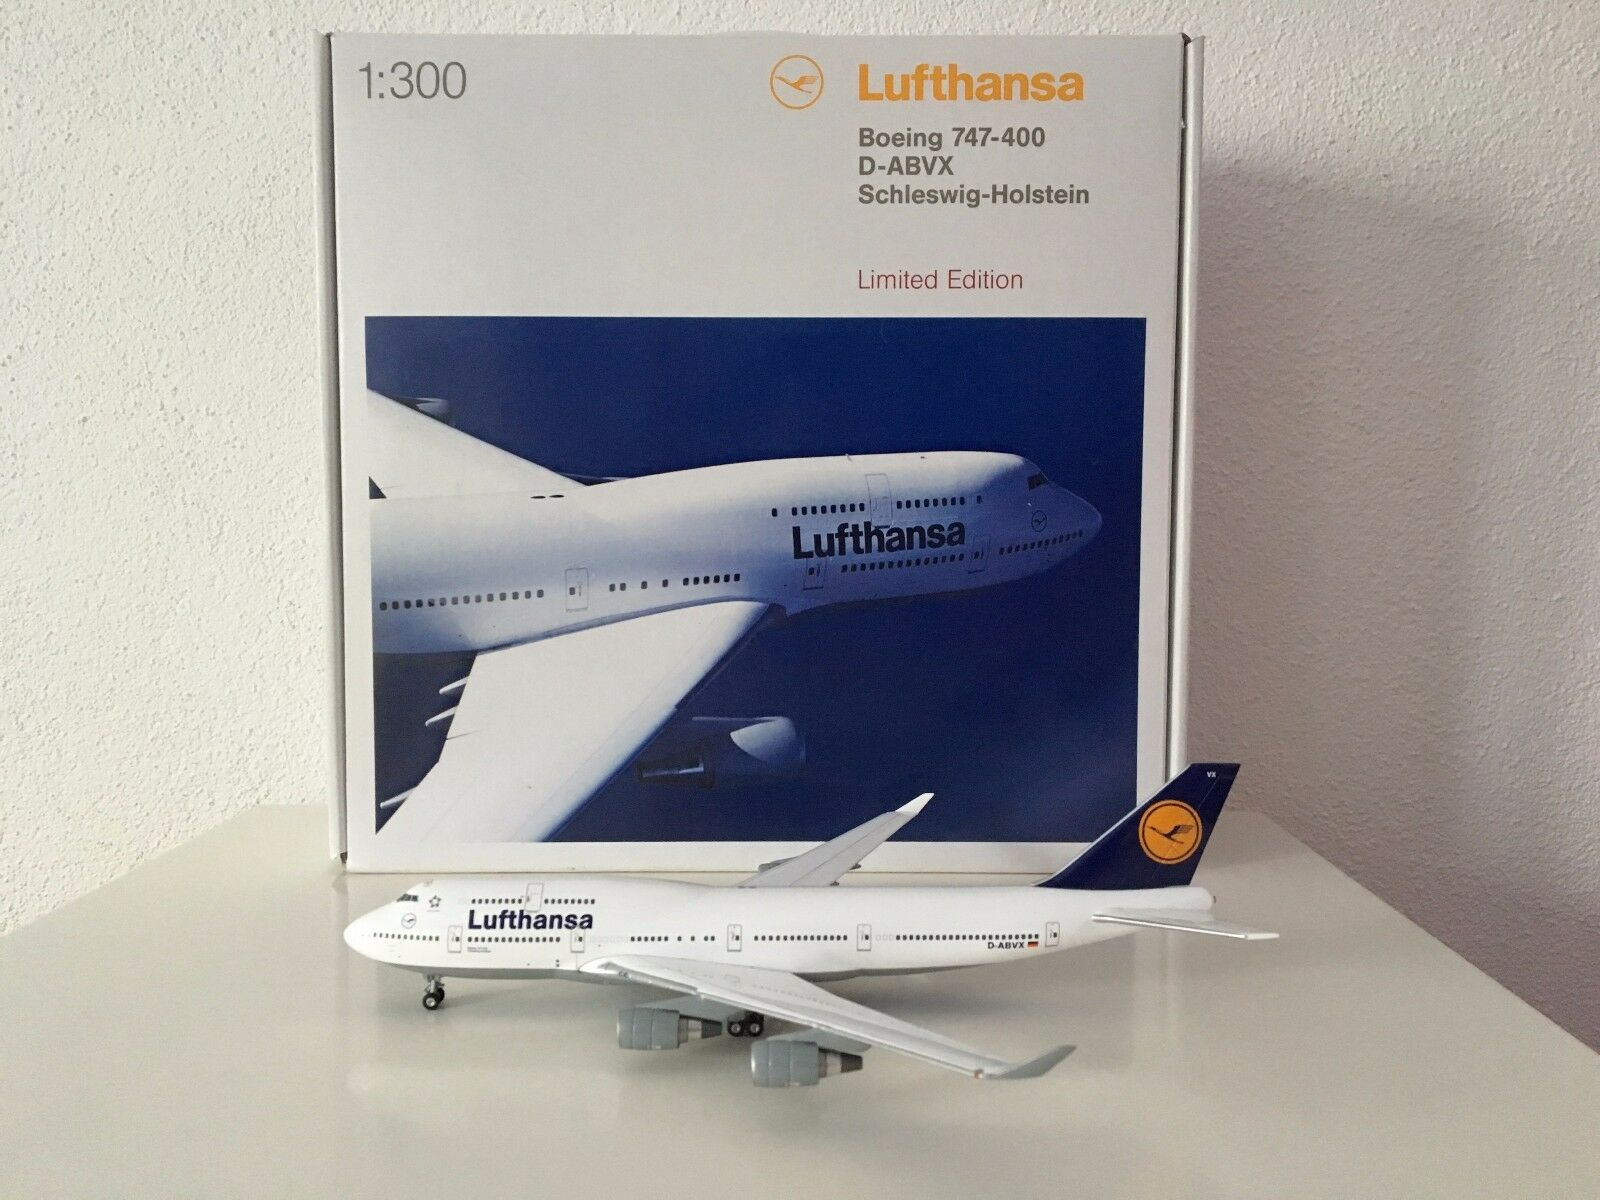 Herpa Wings lufthansa boeing b747-400 limitado 1 300 rar Art. nº 362580